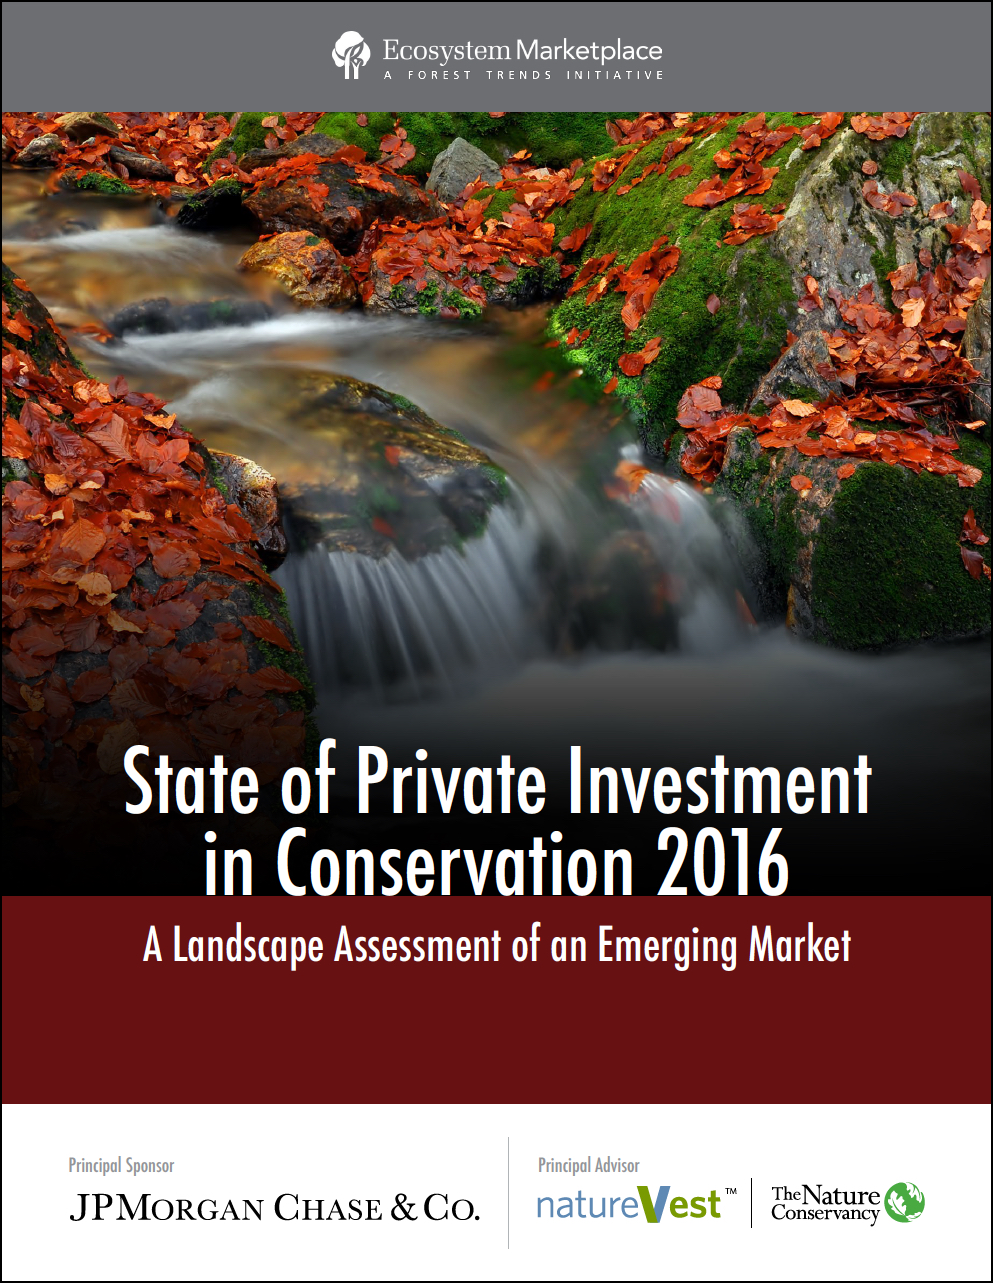 State of Private Investment in Conservation 2016: A Landscape Assessment of an Emerging Market